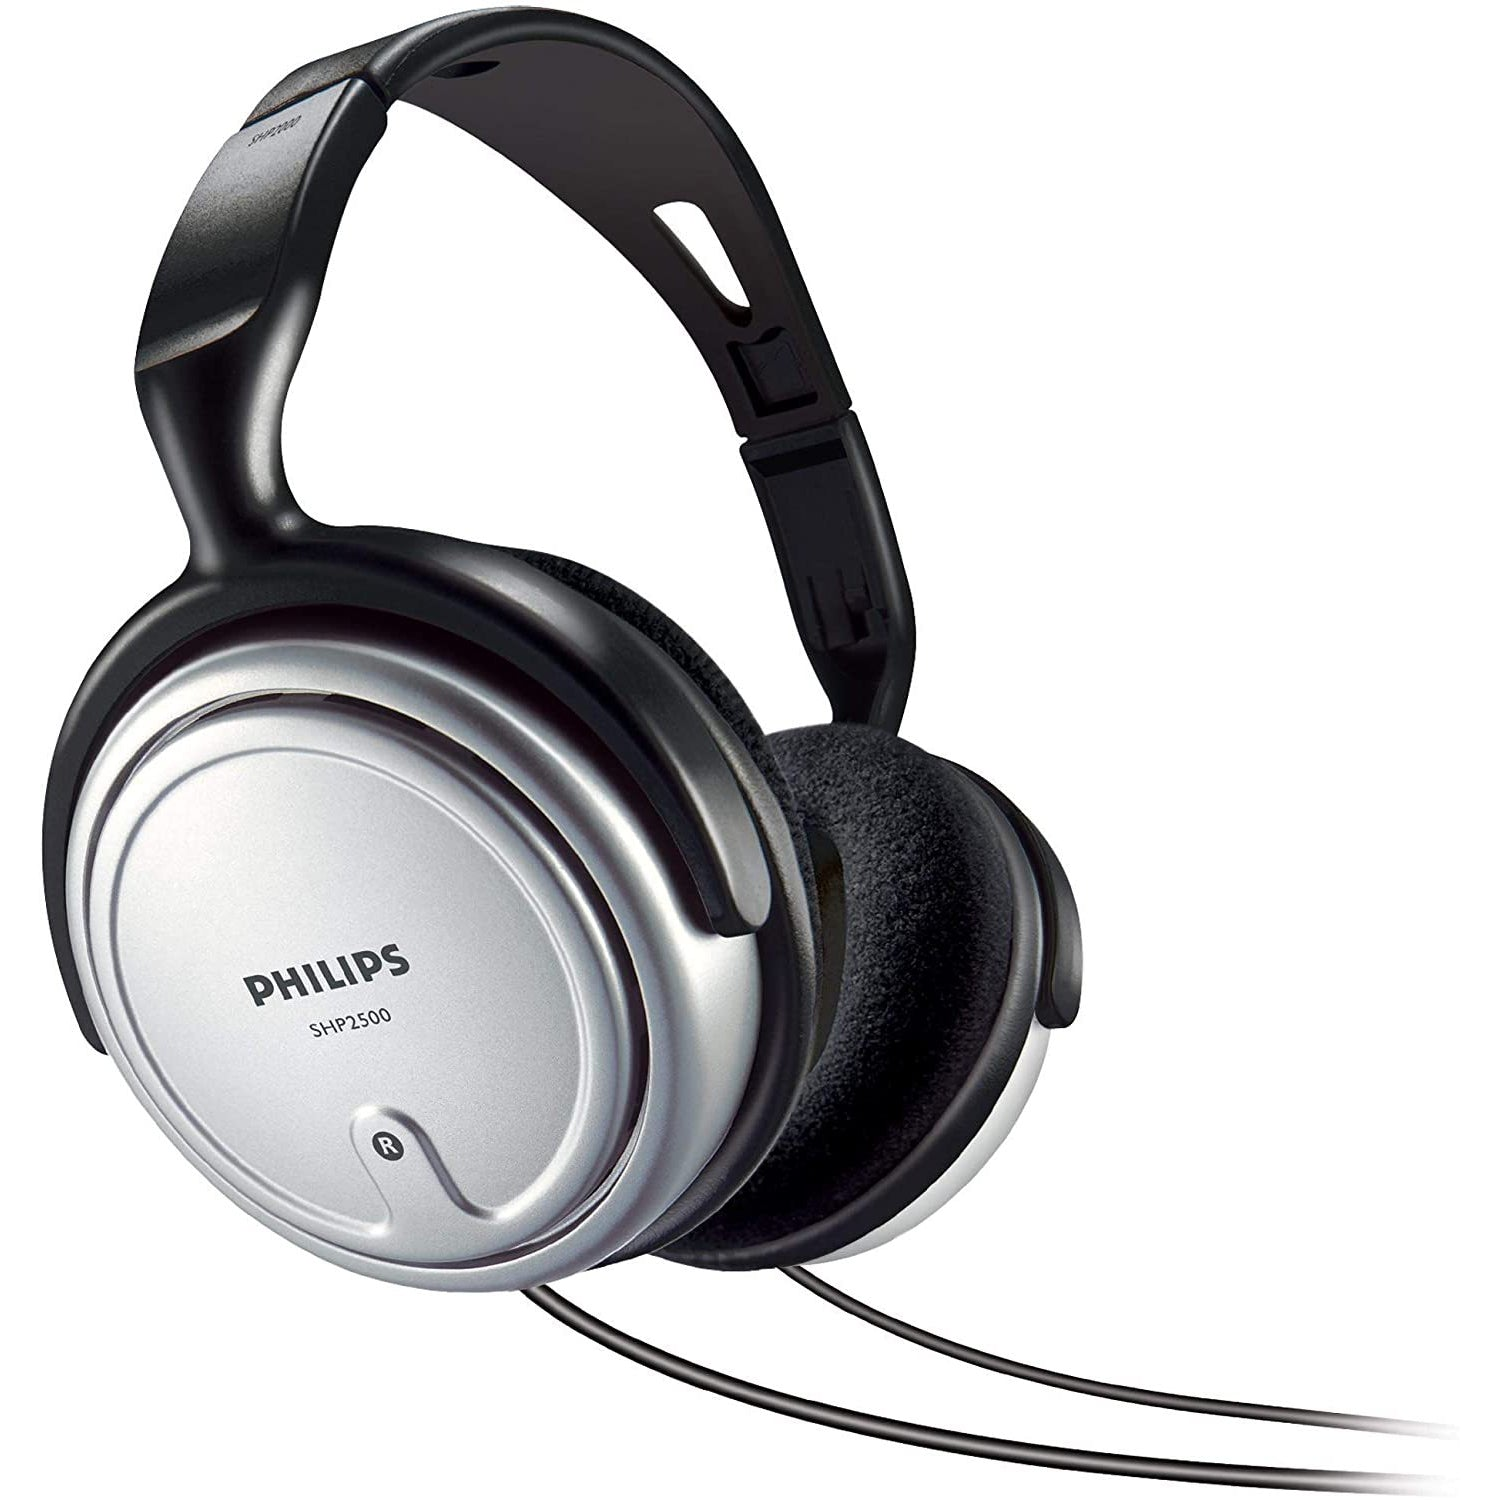 Philips SHP2500/10 Over-Ear Indoor Corded Headphone for Music/PC/TV - Gray [Accessories]